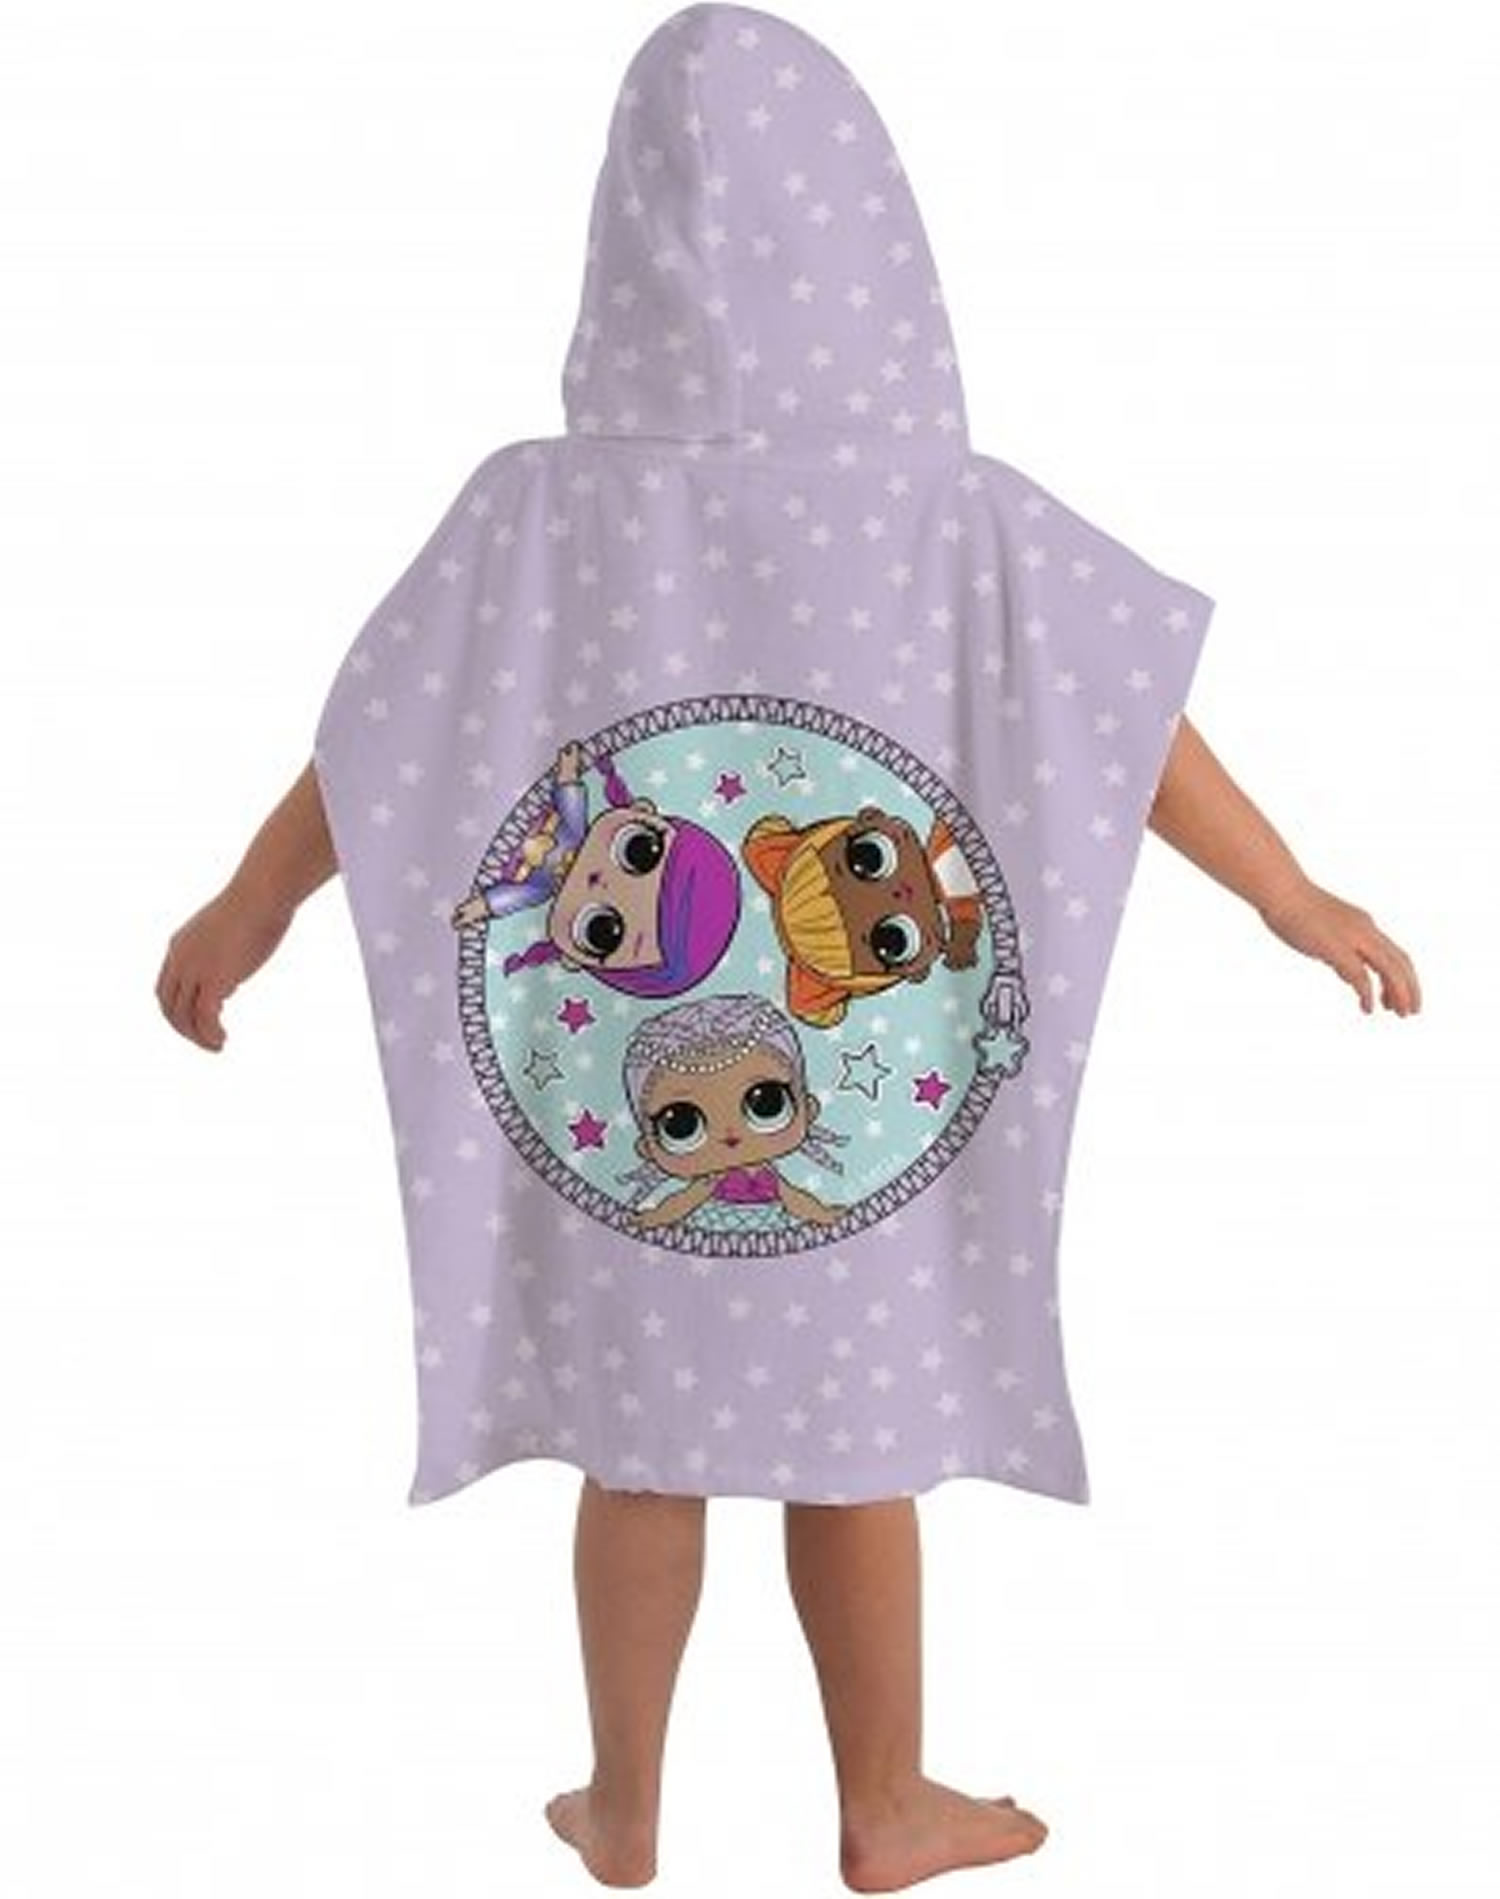 L.o.l Surprise Theatre Club Poncho Towel